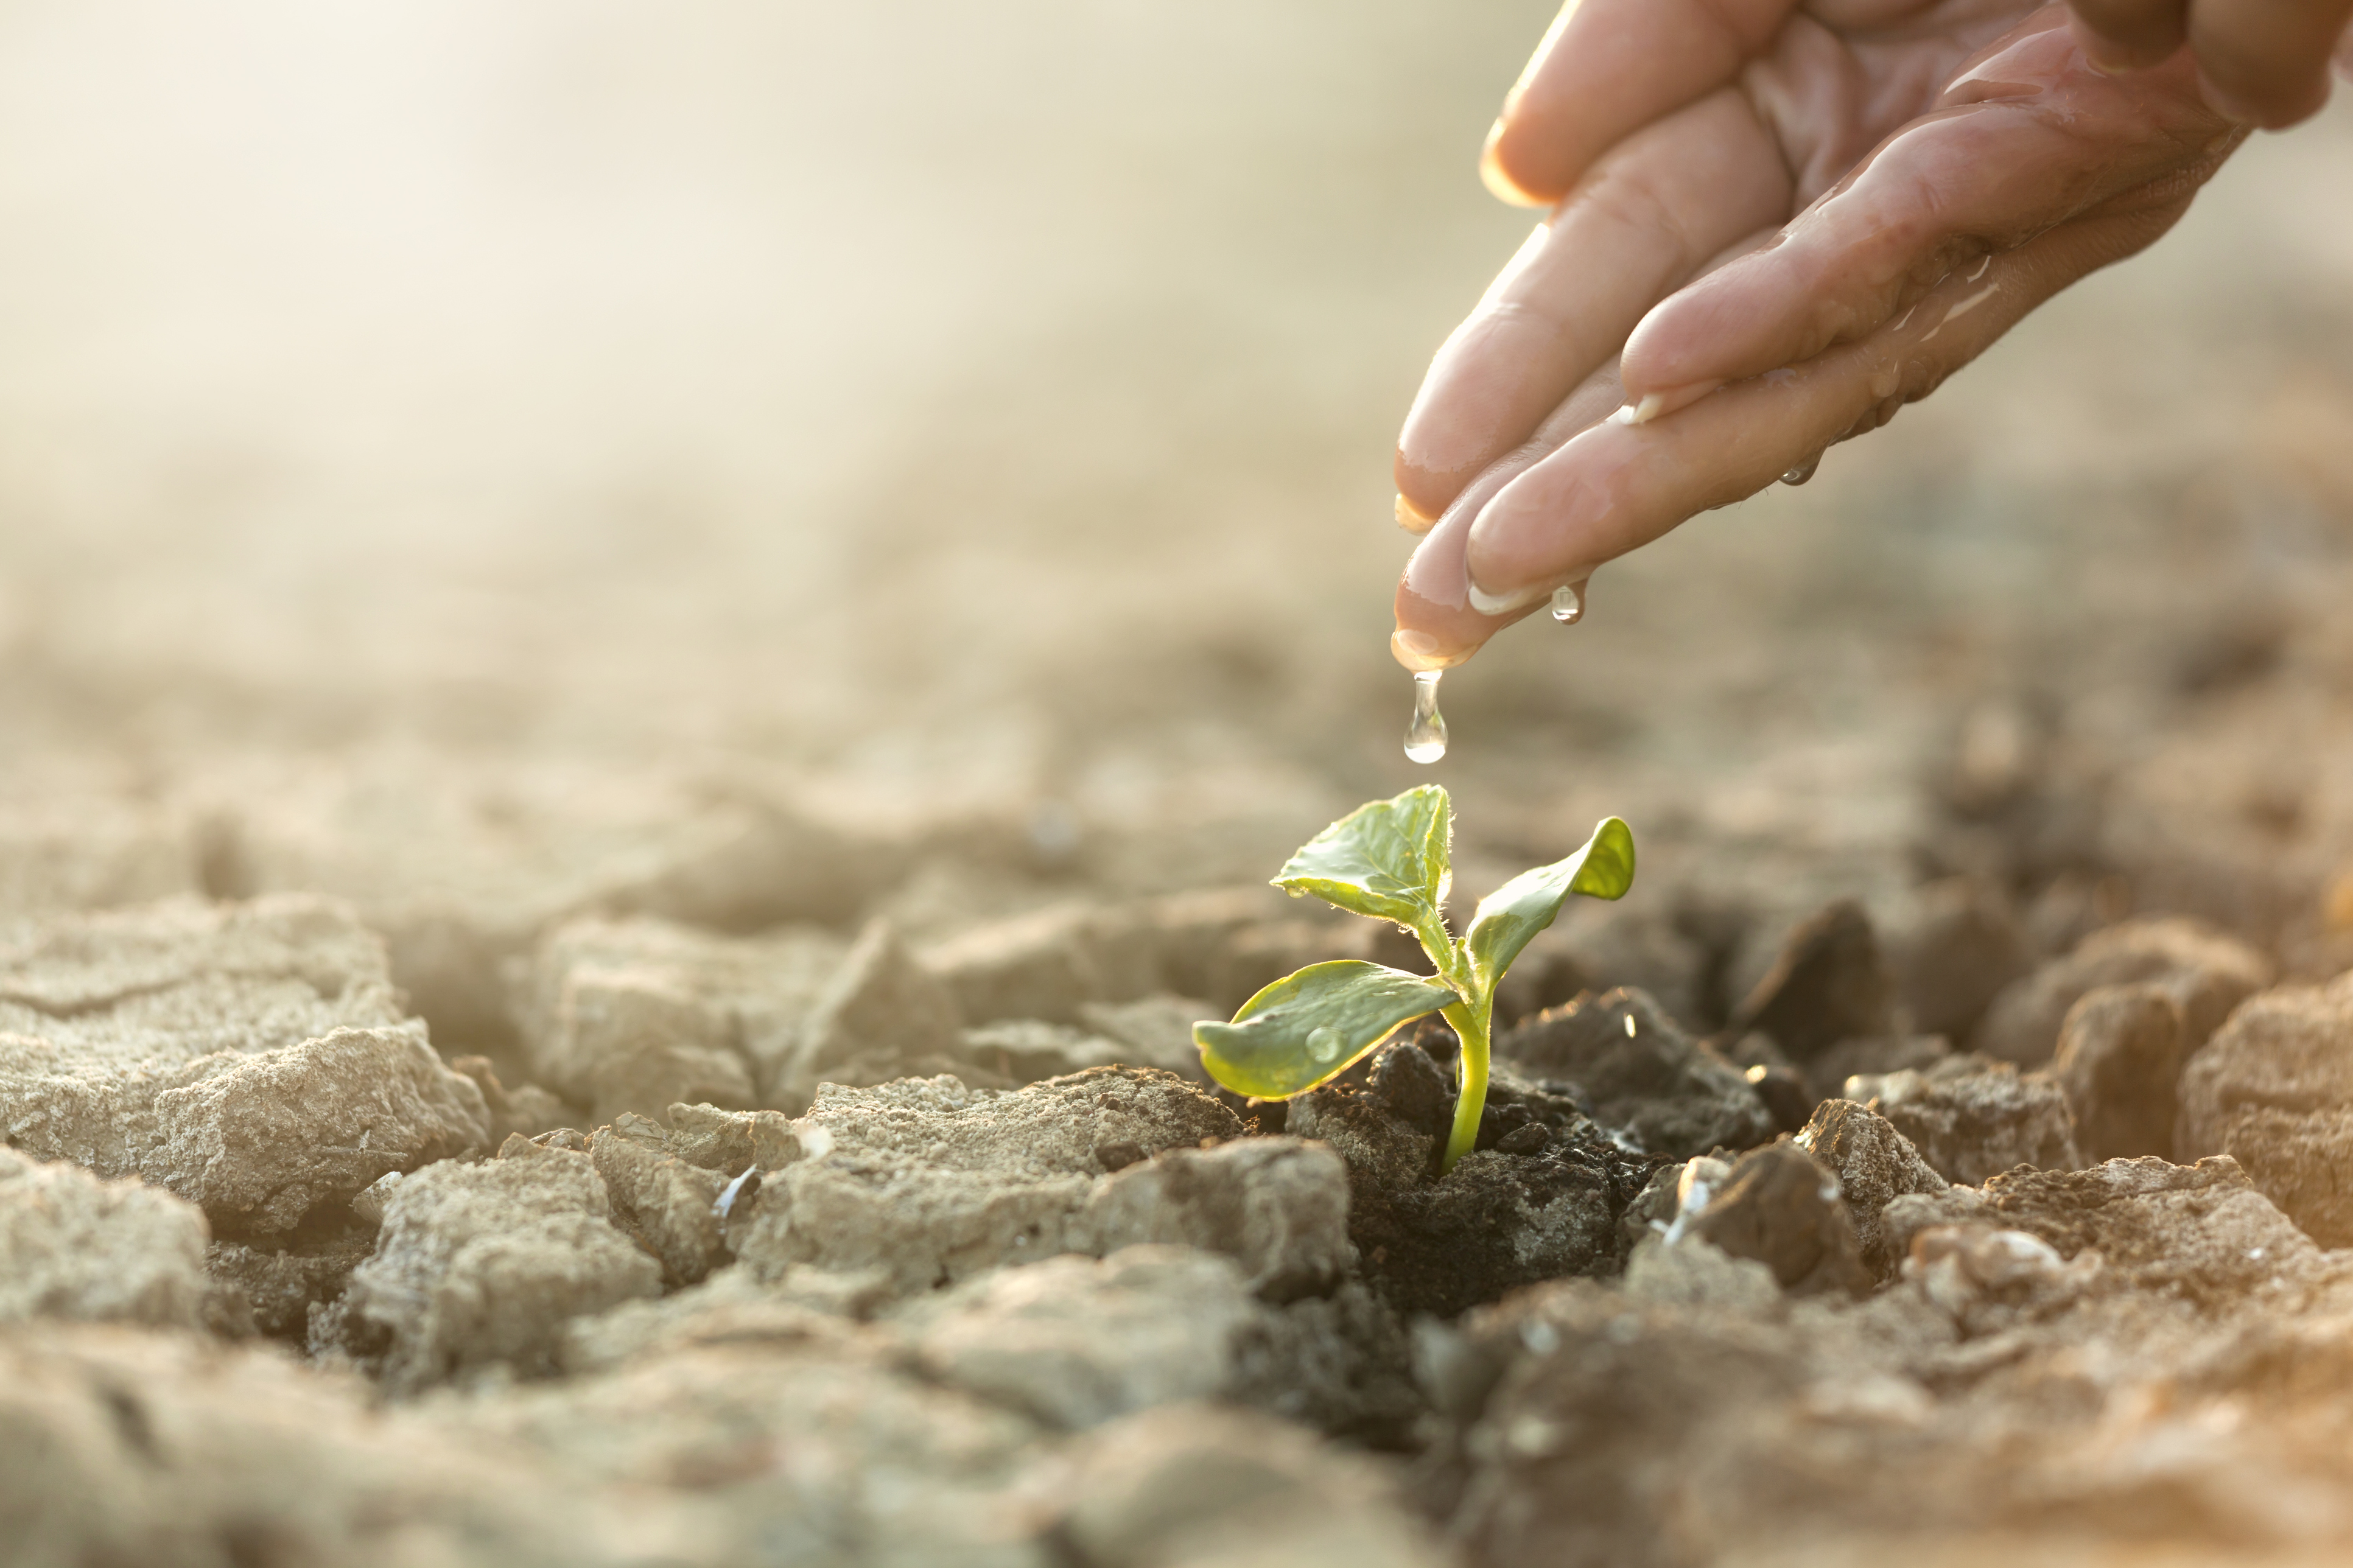 Seeding Plant, woman hand watering young tree on cracked earth soil